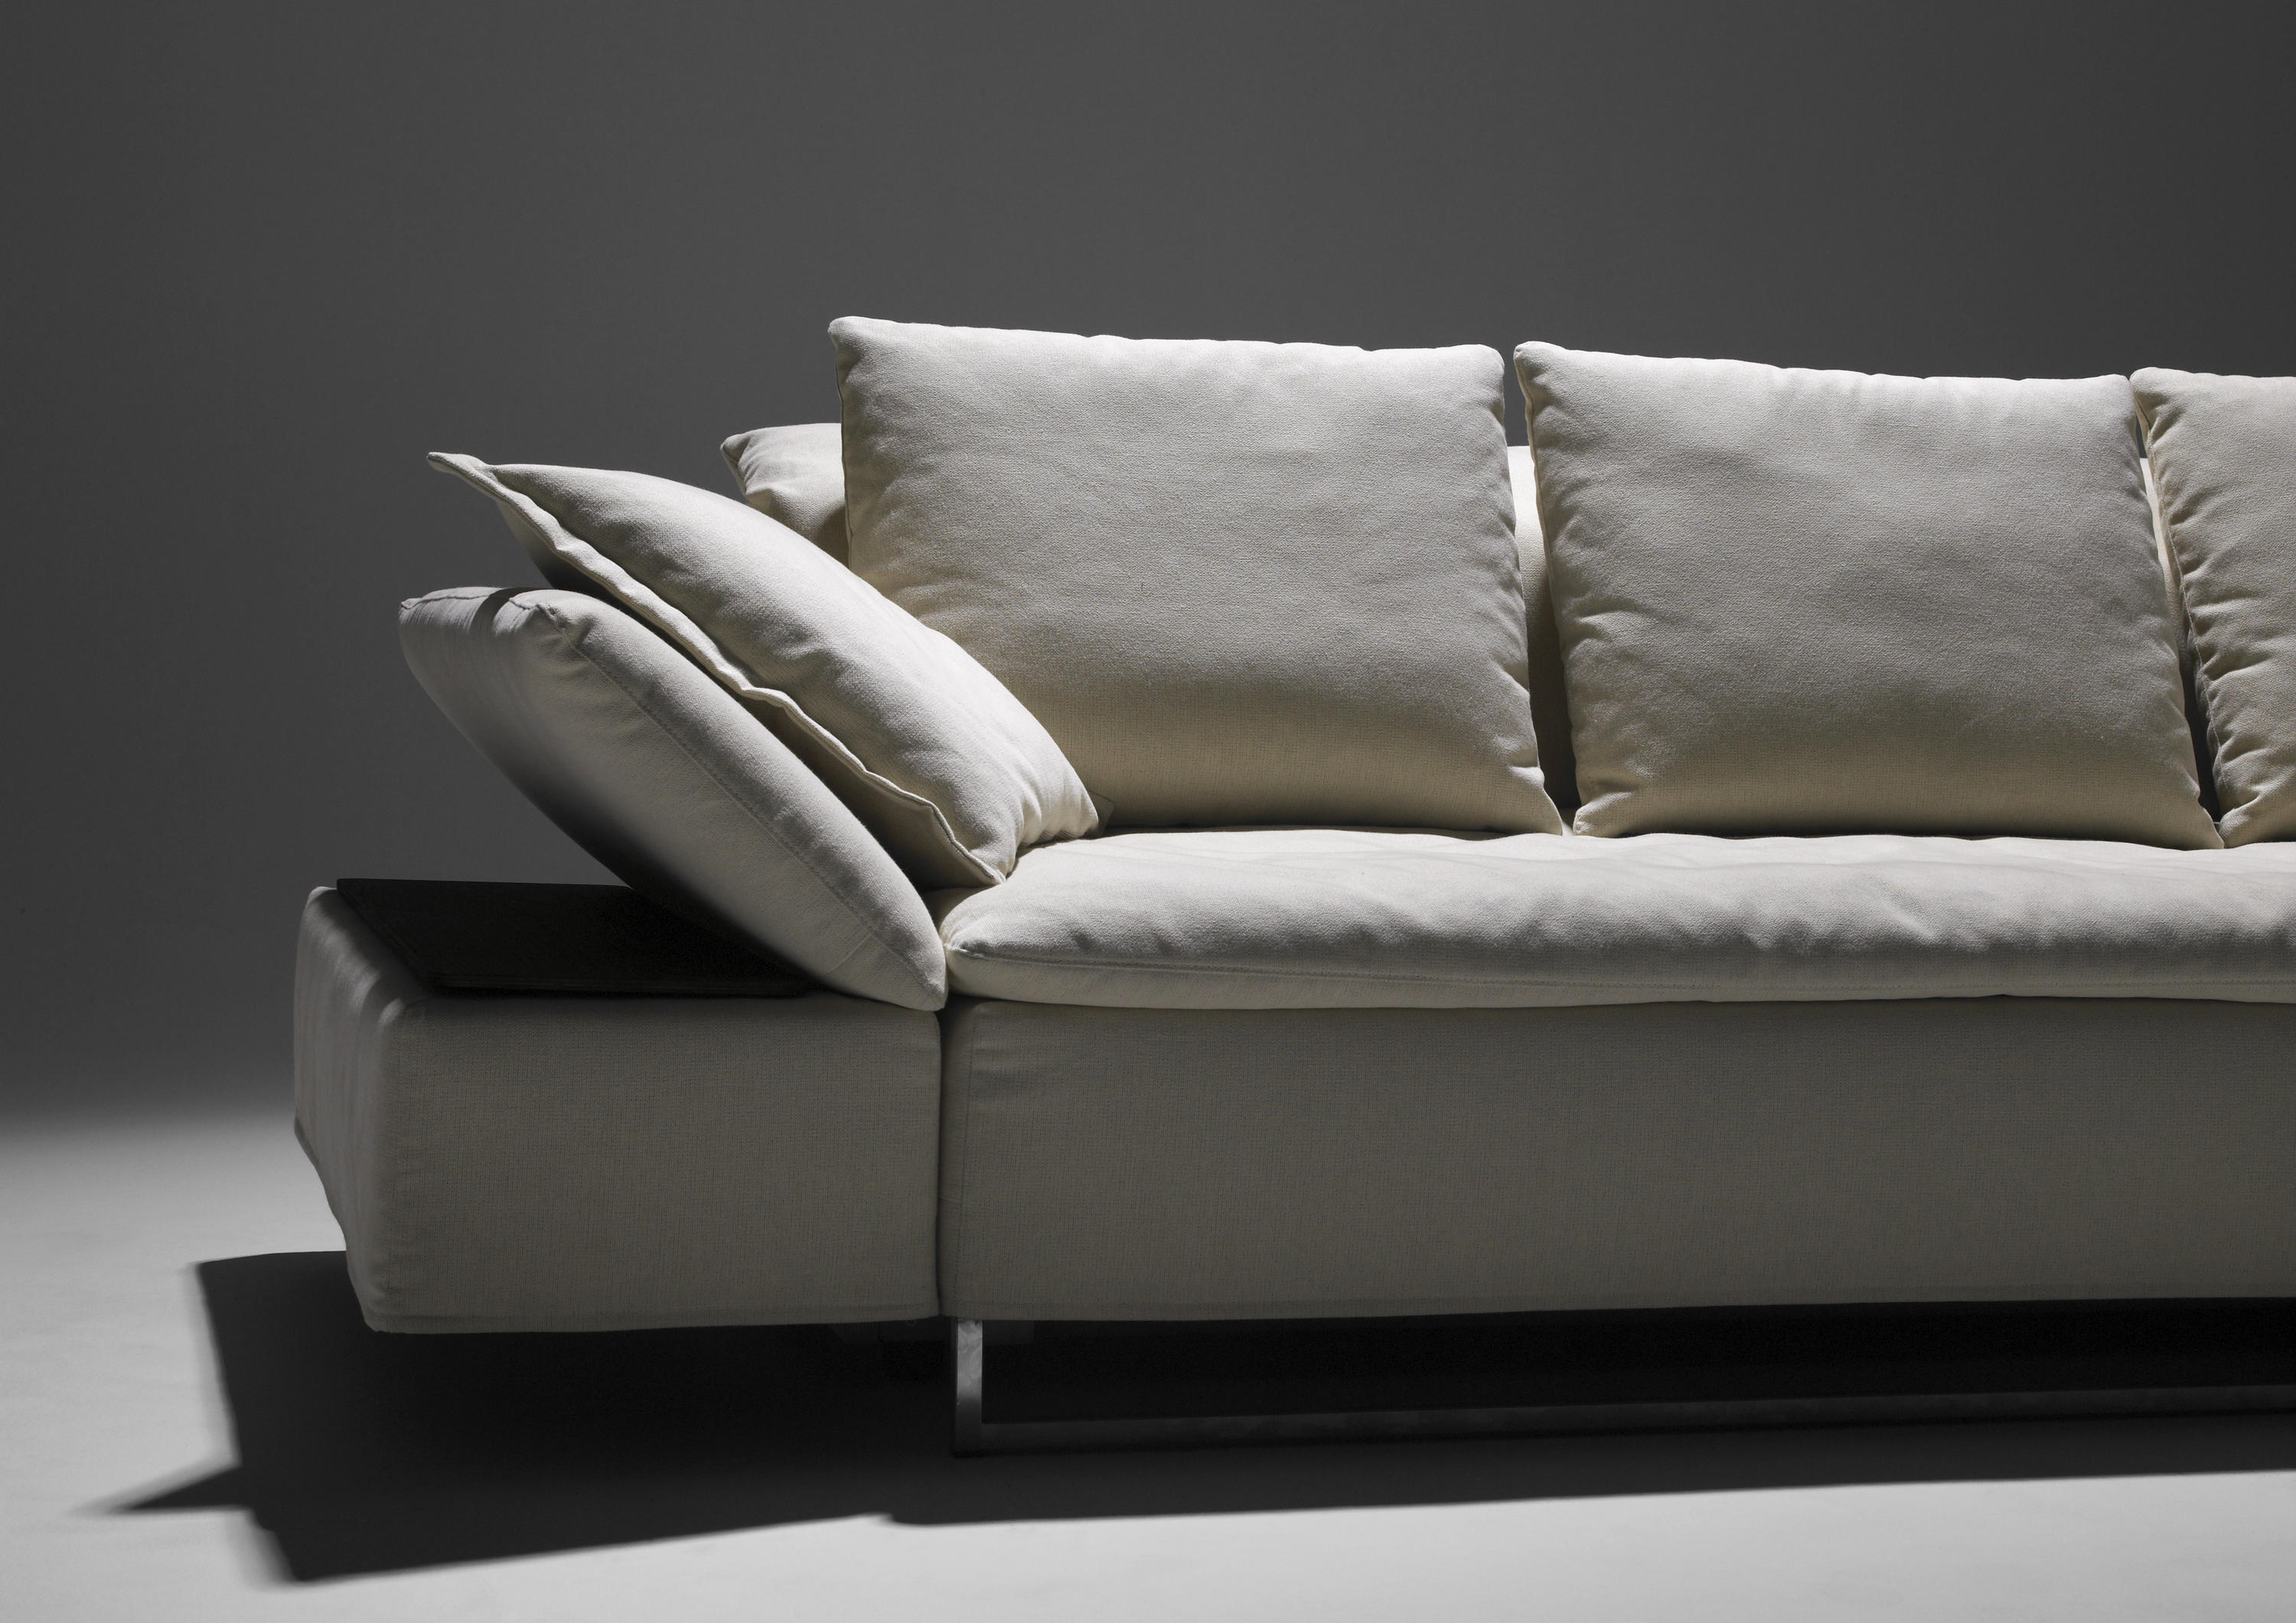 Isla sofa bed sofa beds from signet wohnmbel architonic isla sofa bed by signet wohnmbel parisarafo Images